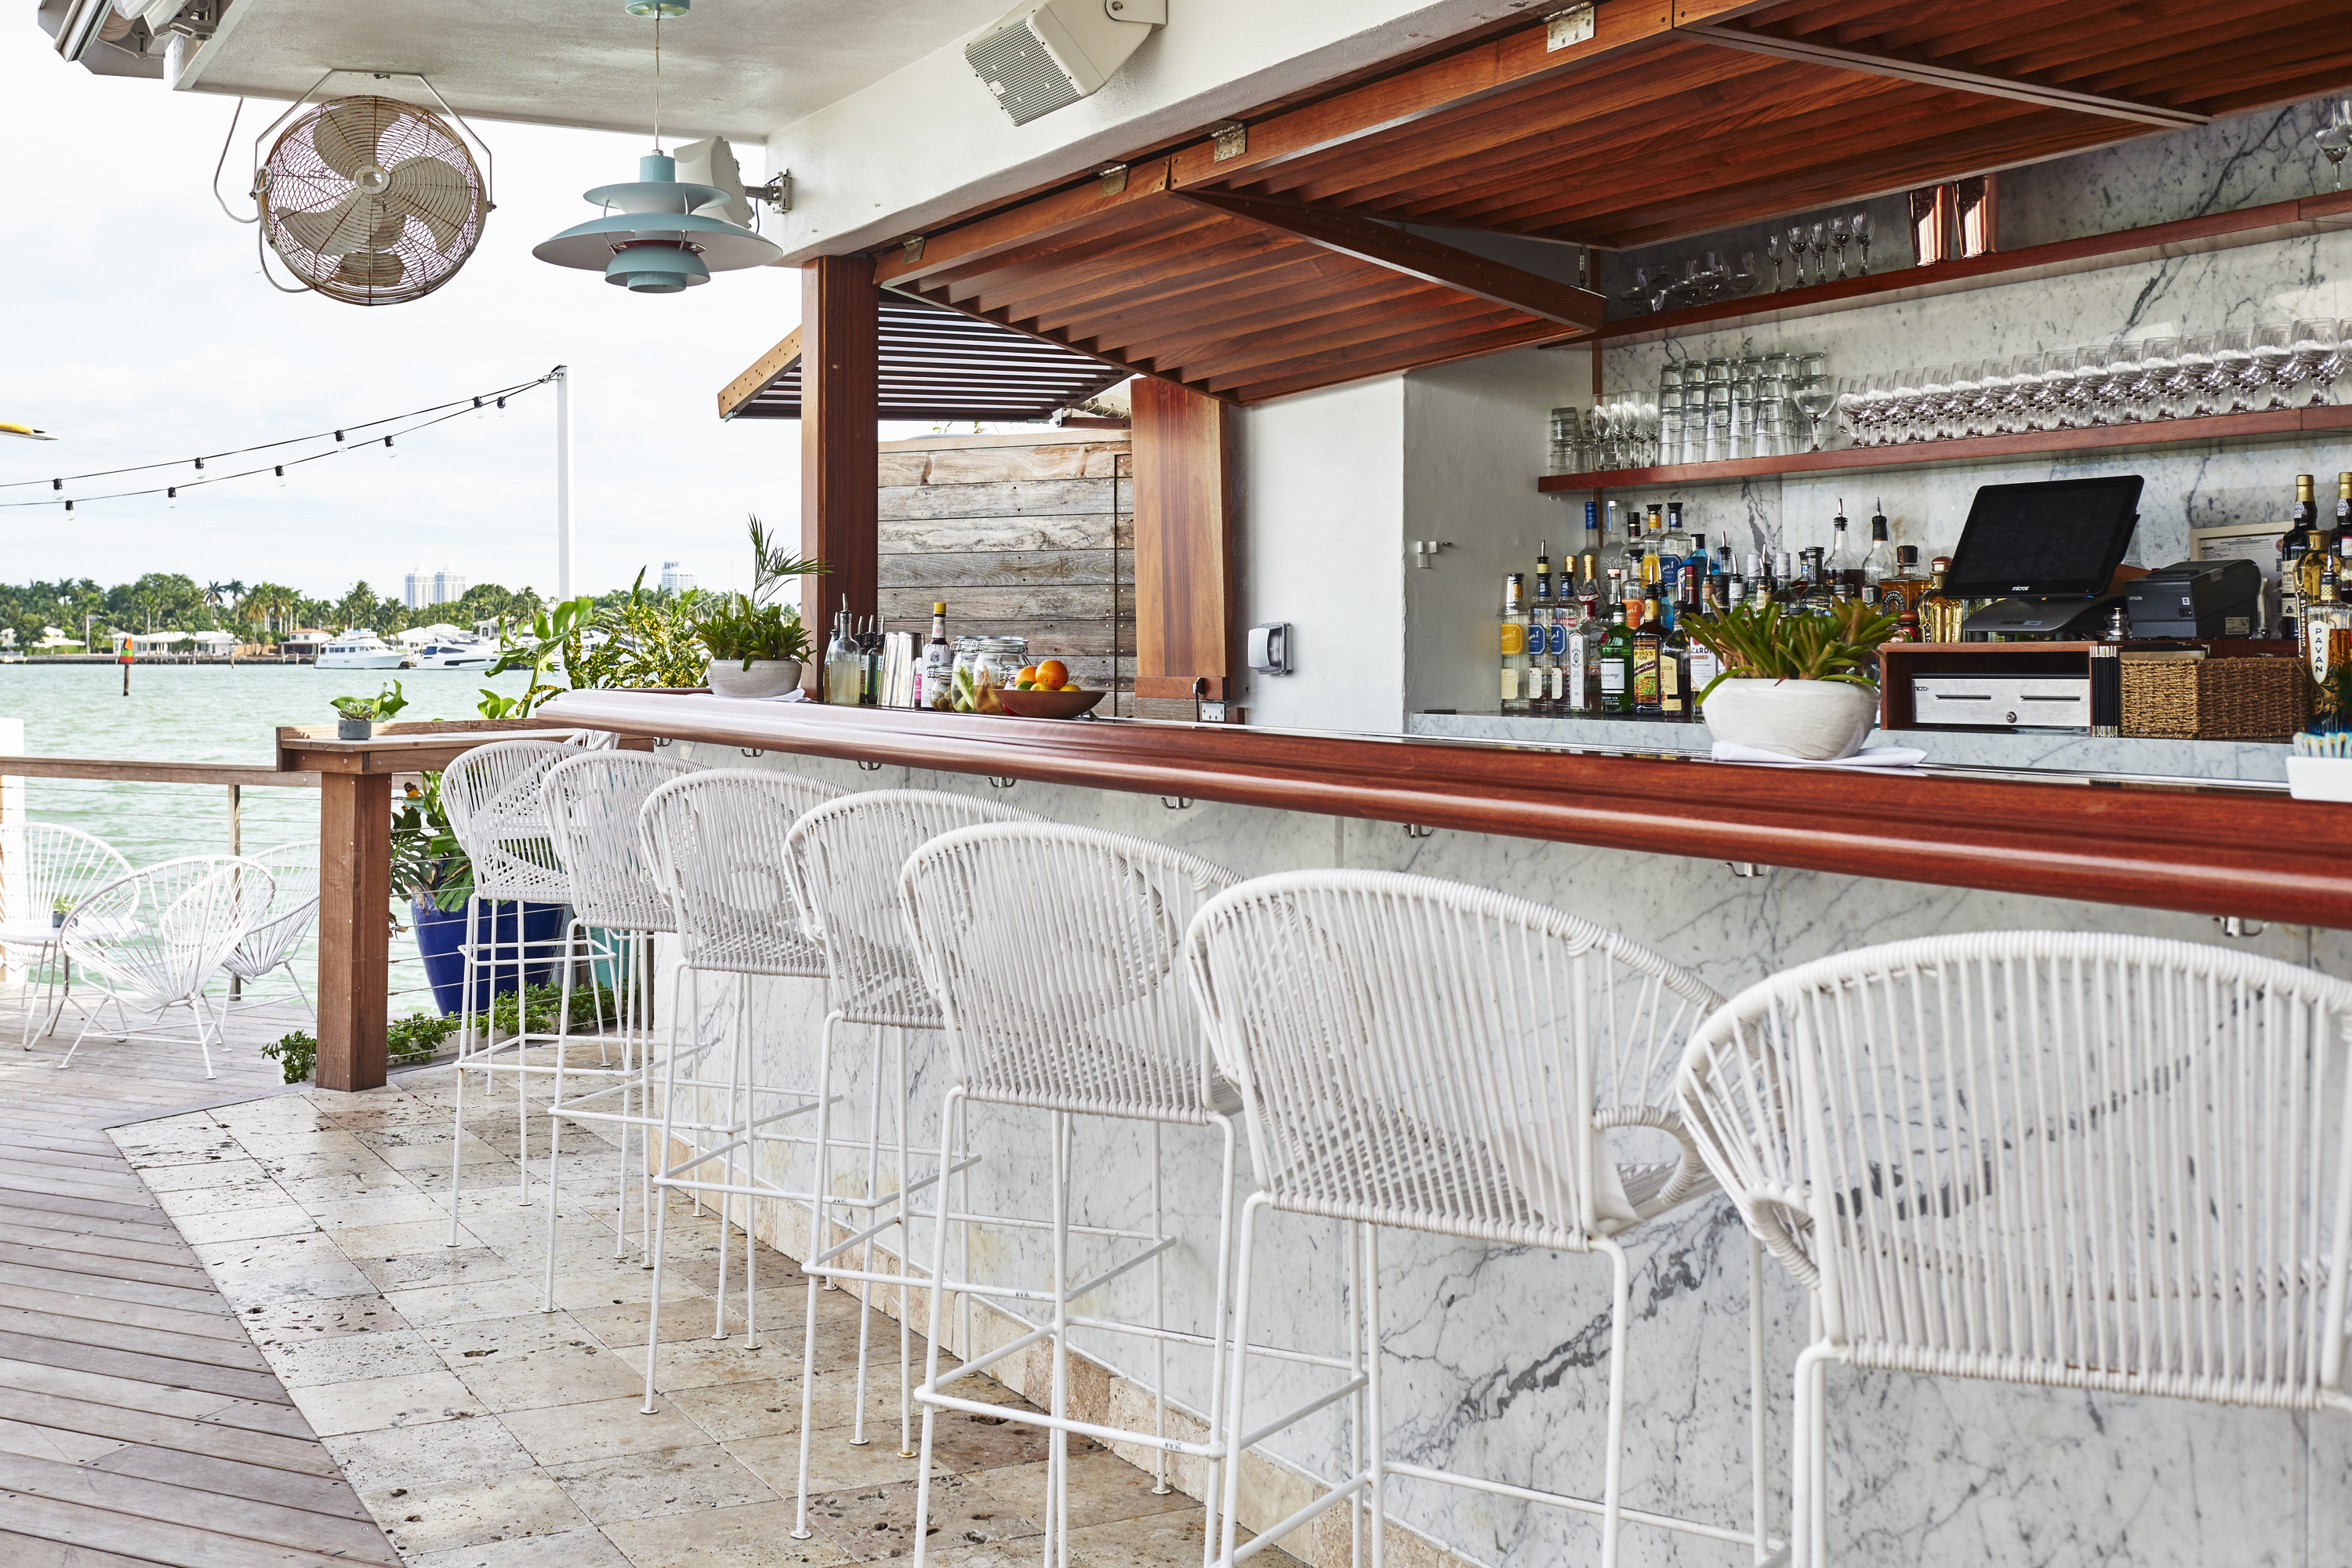 The best waterfront bars in Miami